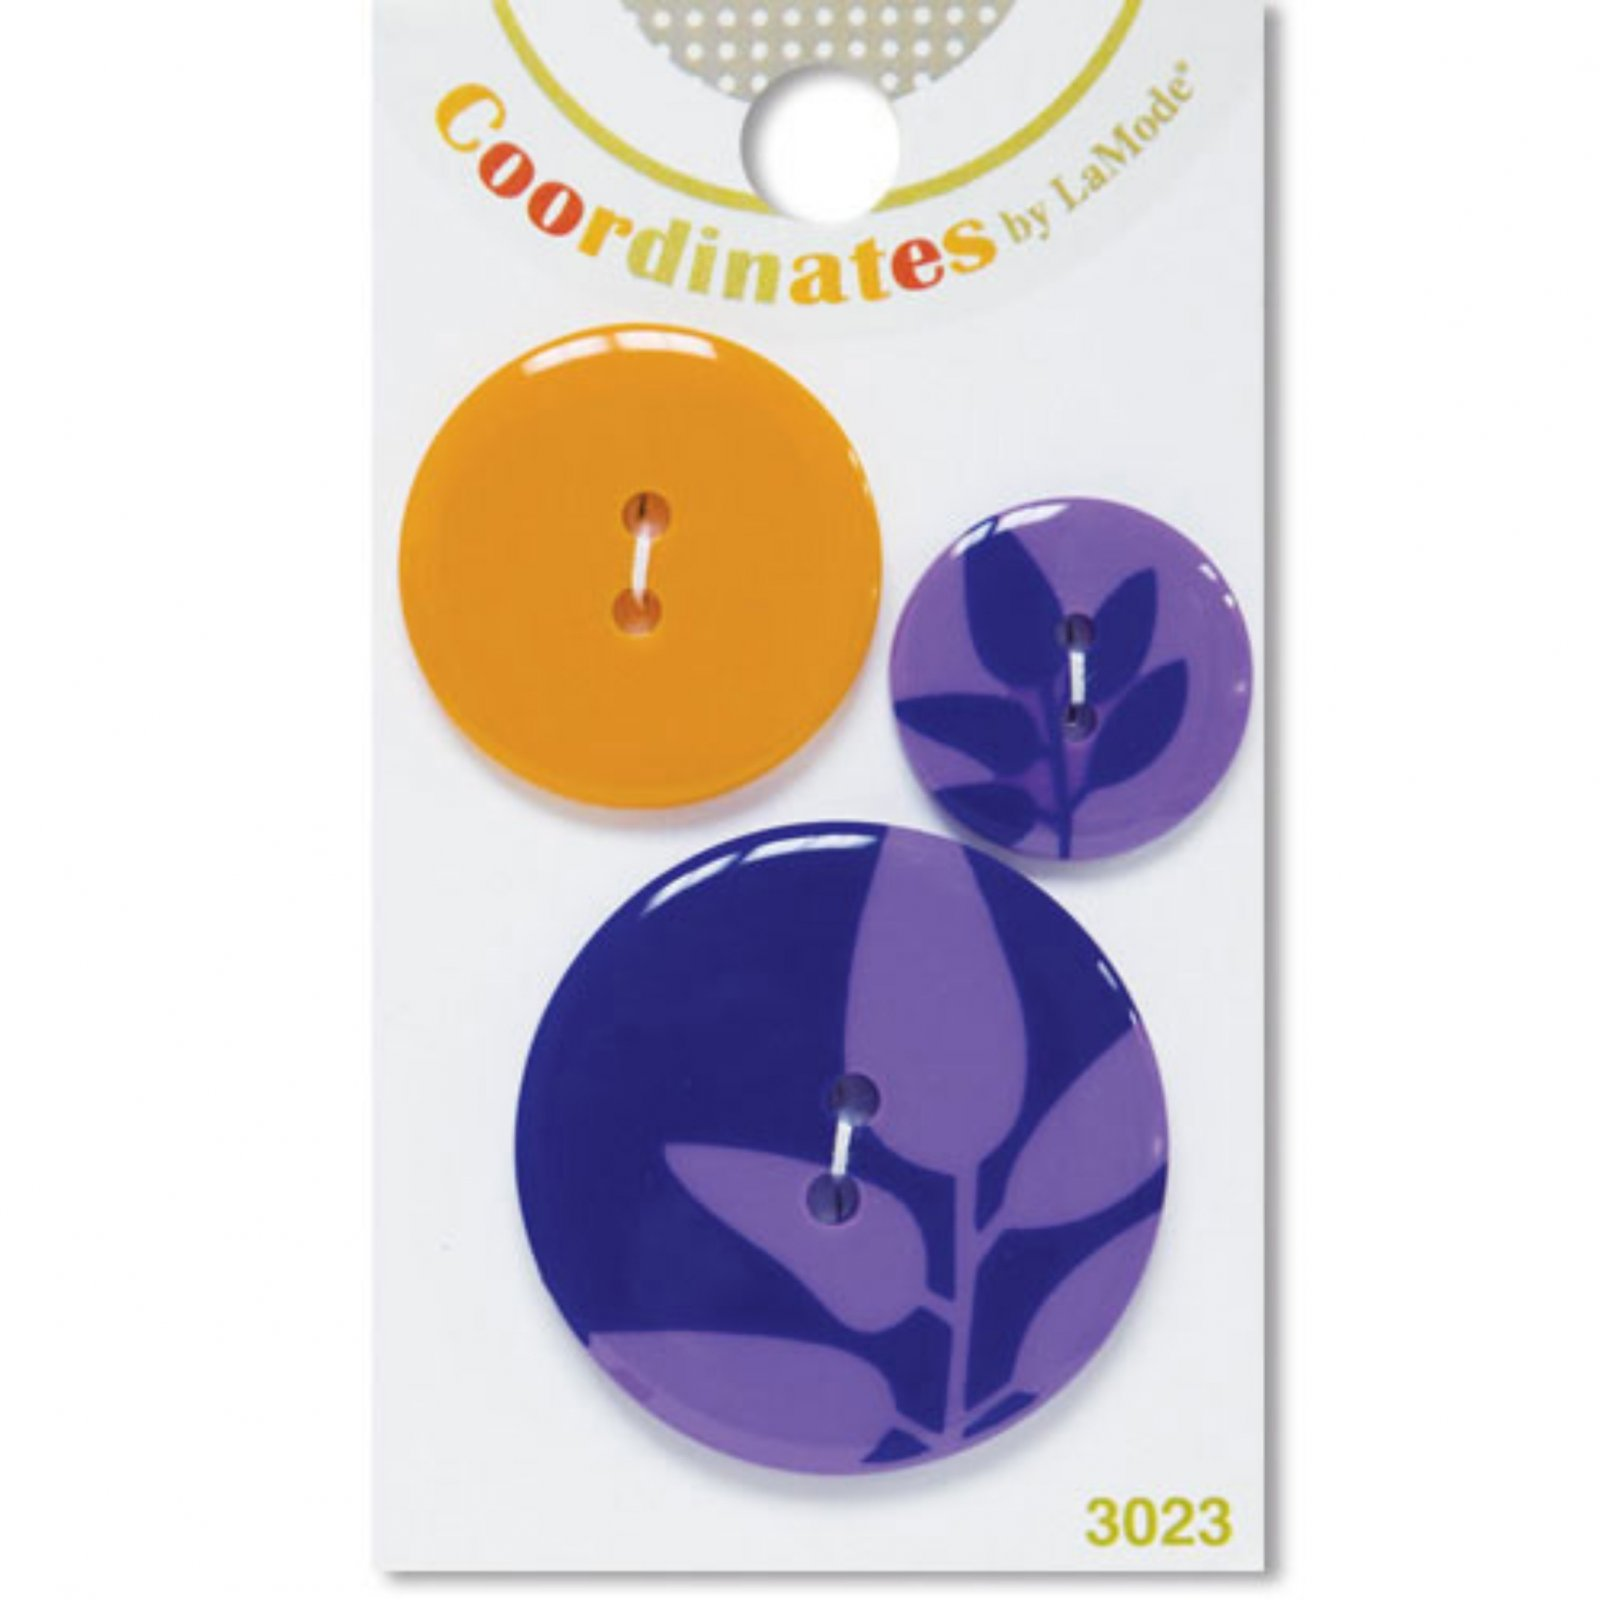 Coordinates by LaMode - Purple Silhouette Buttons